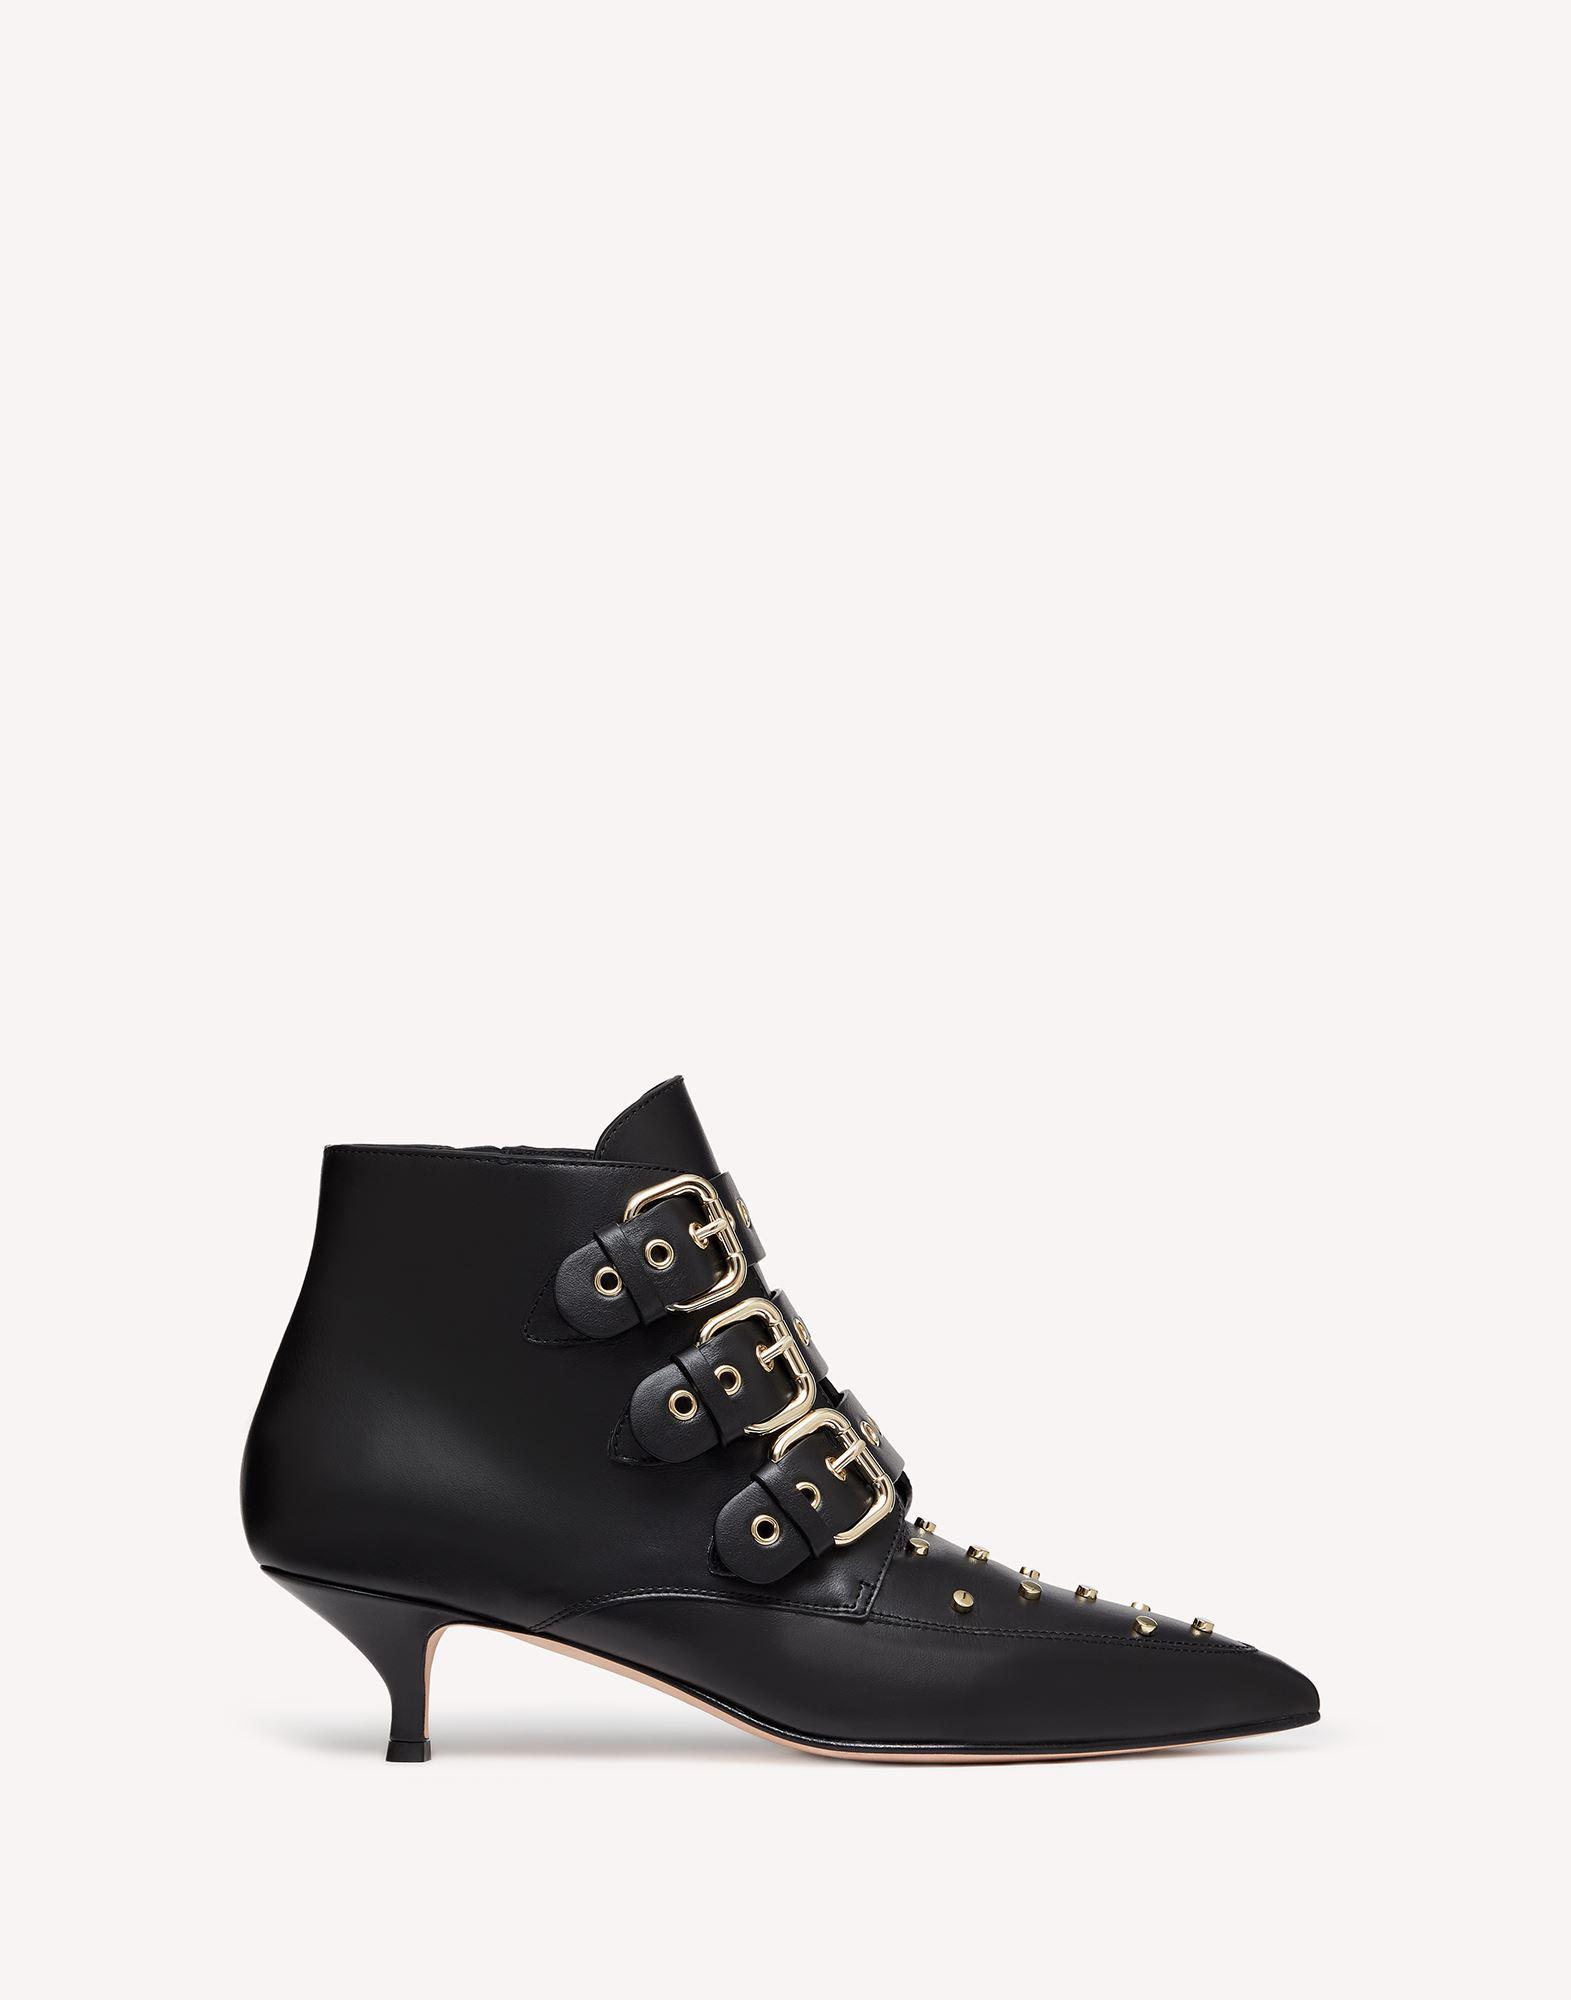 ROCK POIS ANKLE BOOT